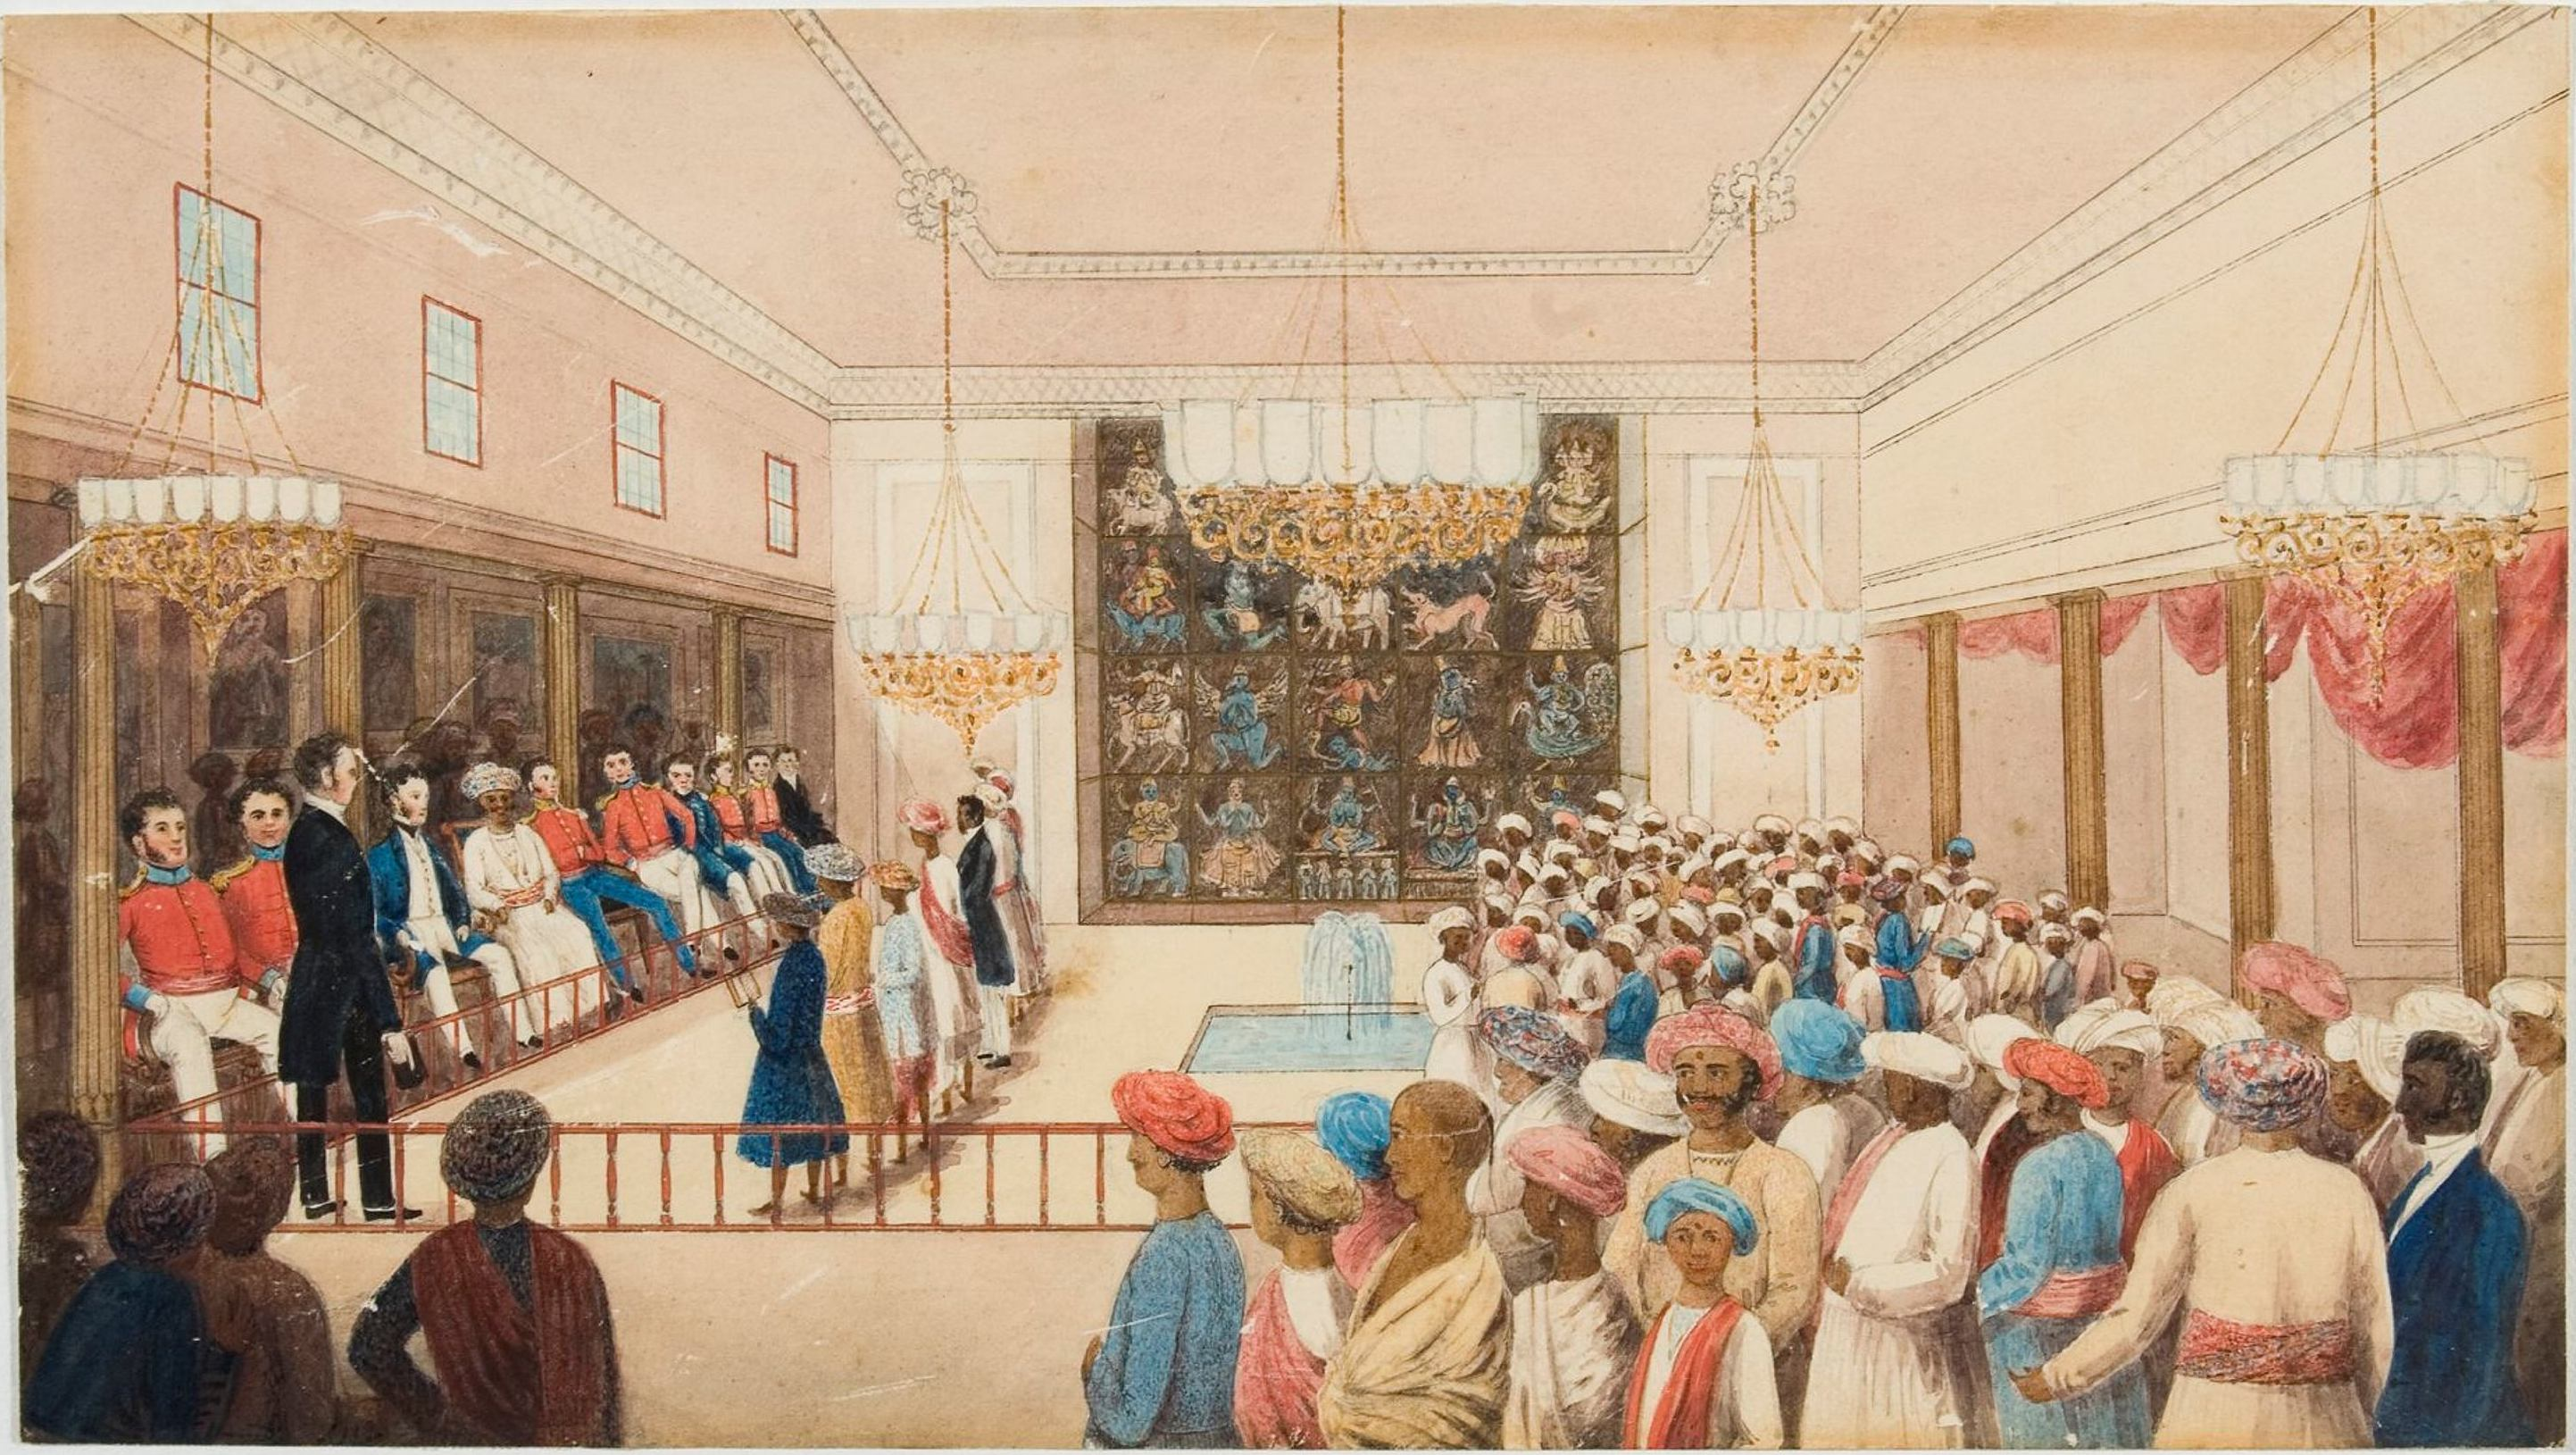 First examination of boys by Rev. T. Hodson in Rajah's Palace / artist unknown